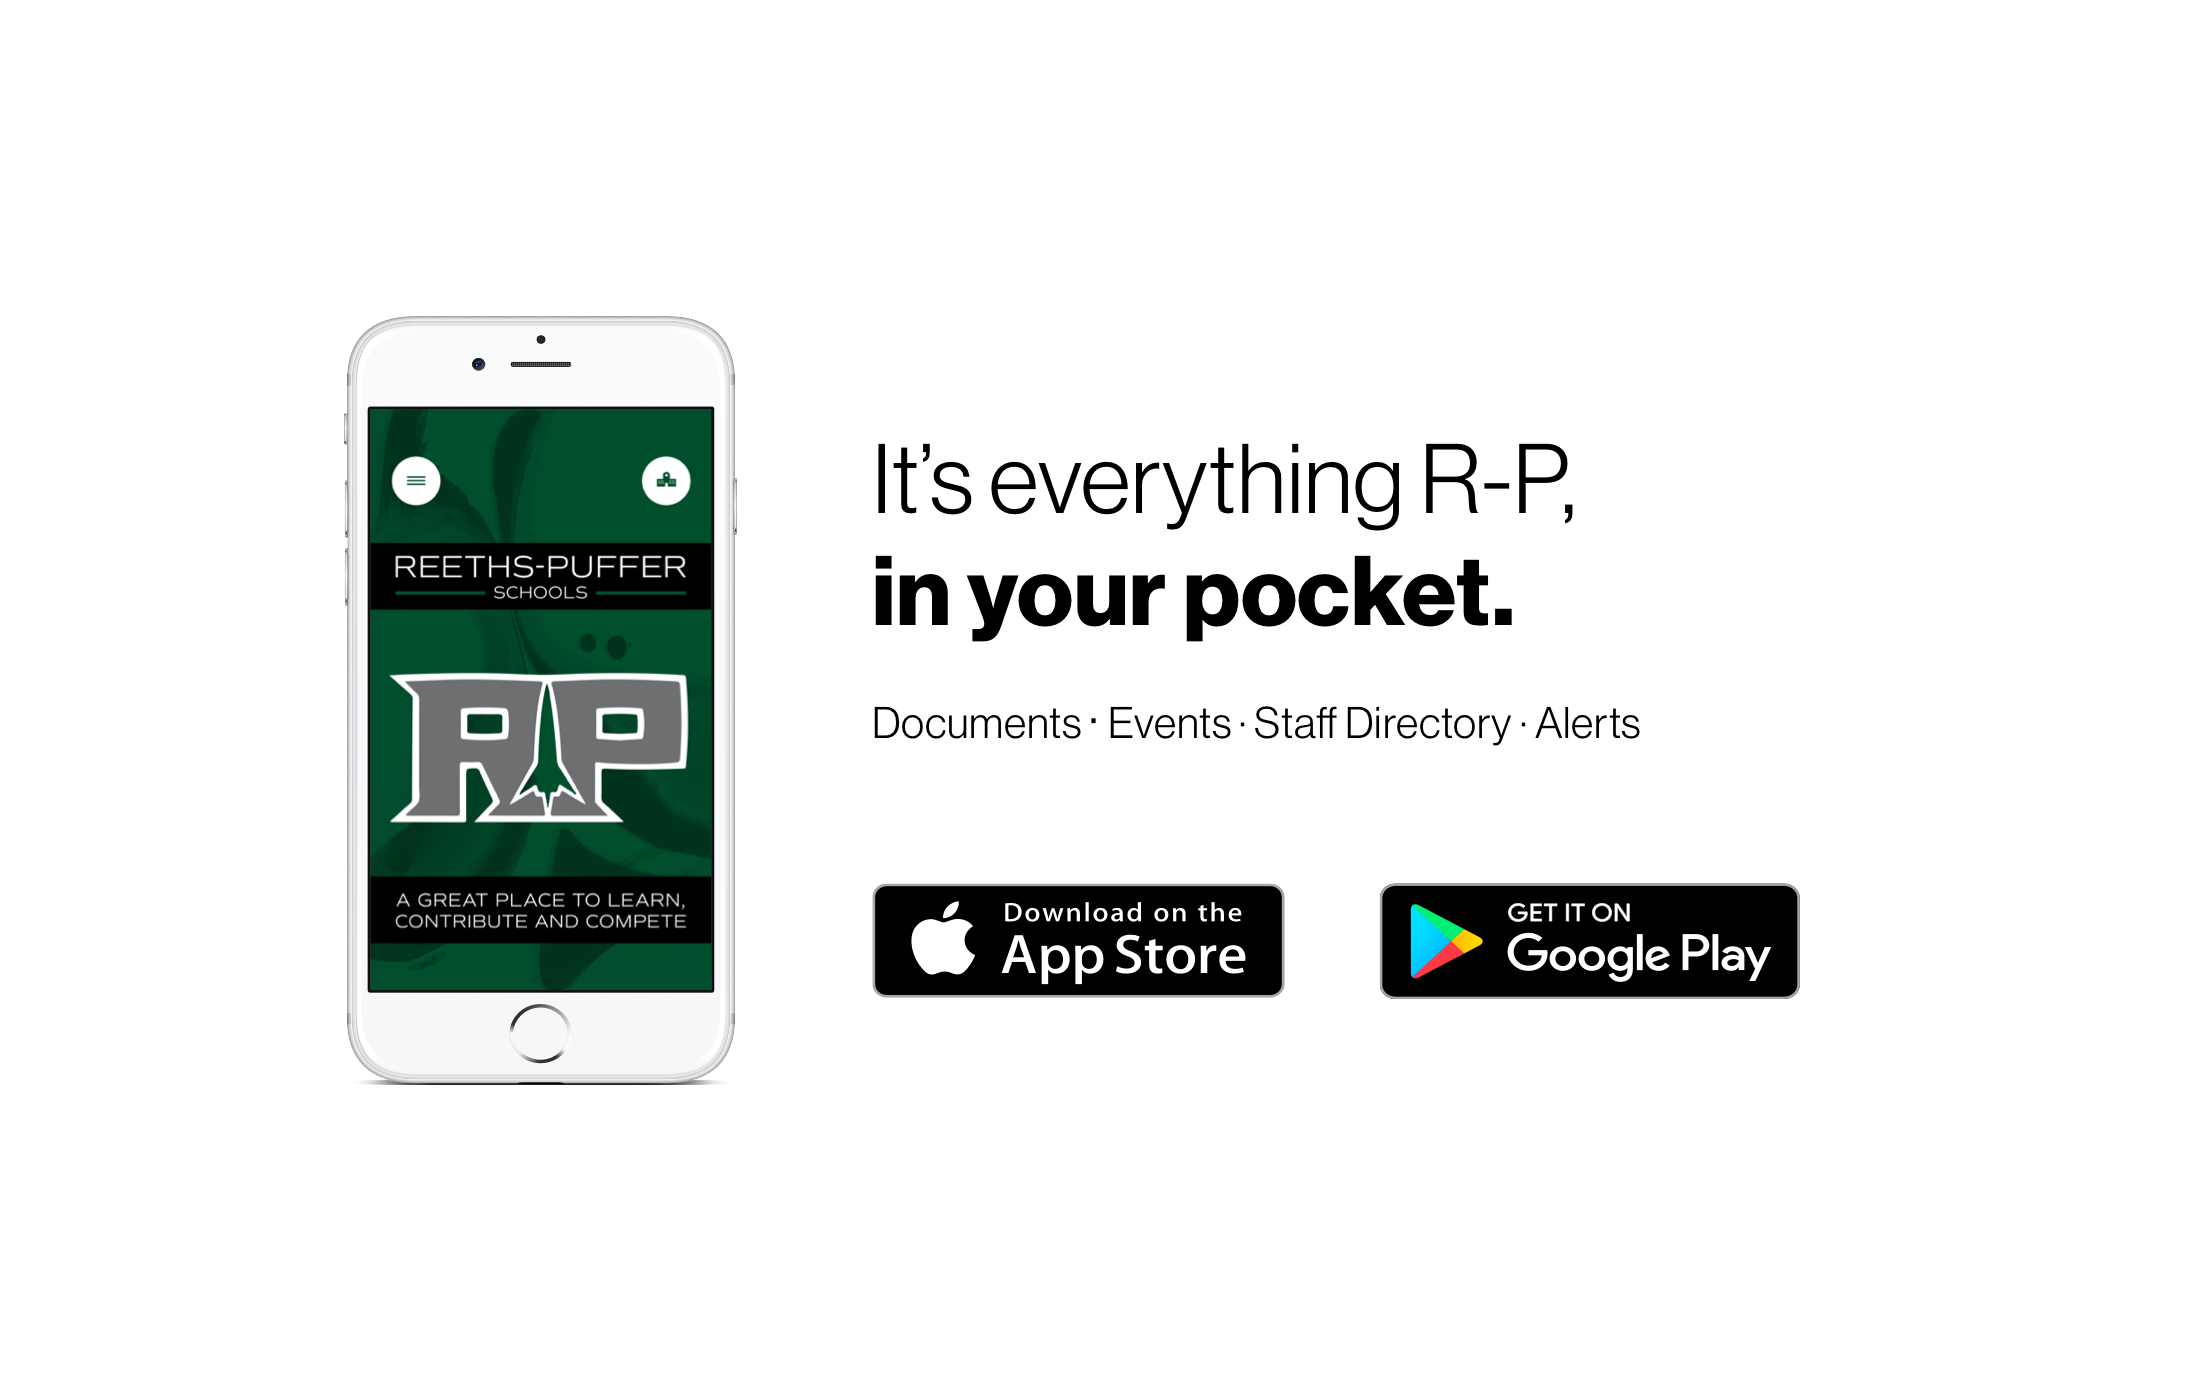 It's everything R-P, in your pocket.